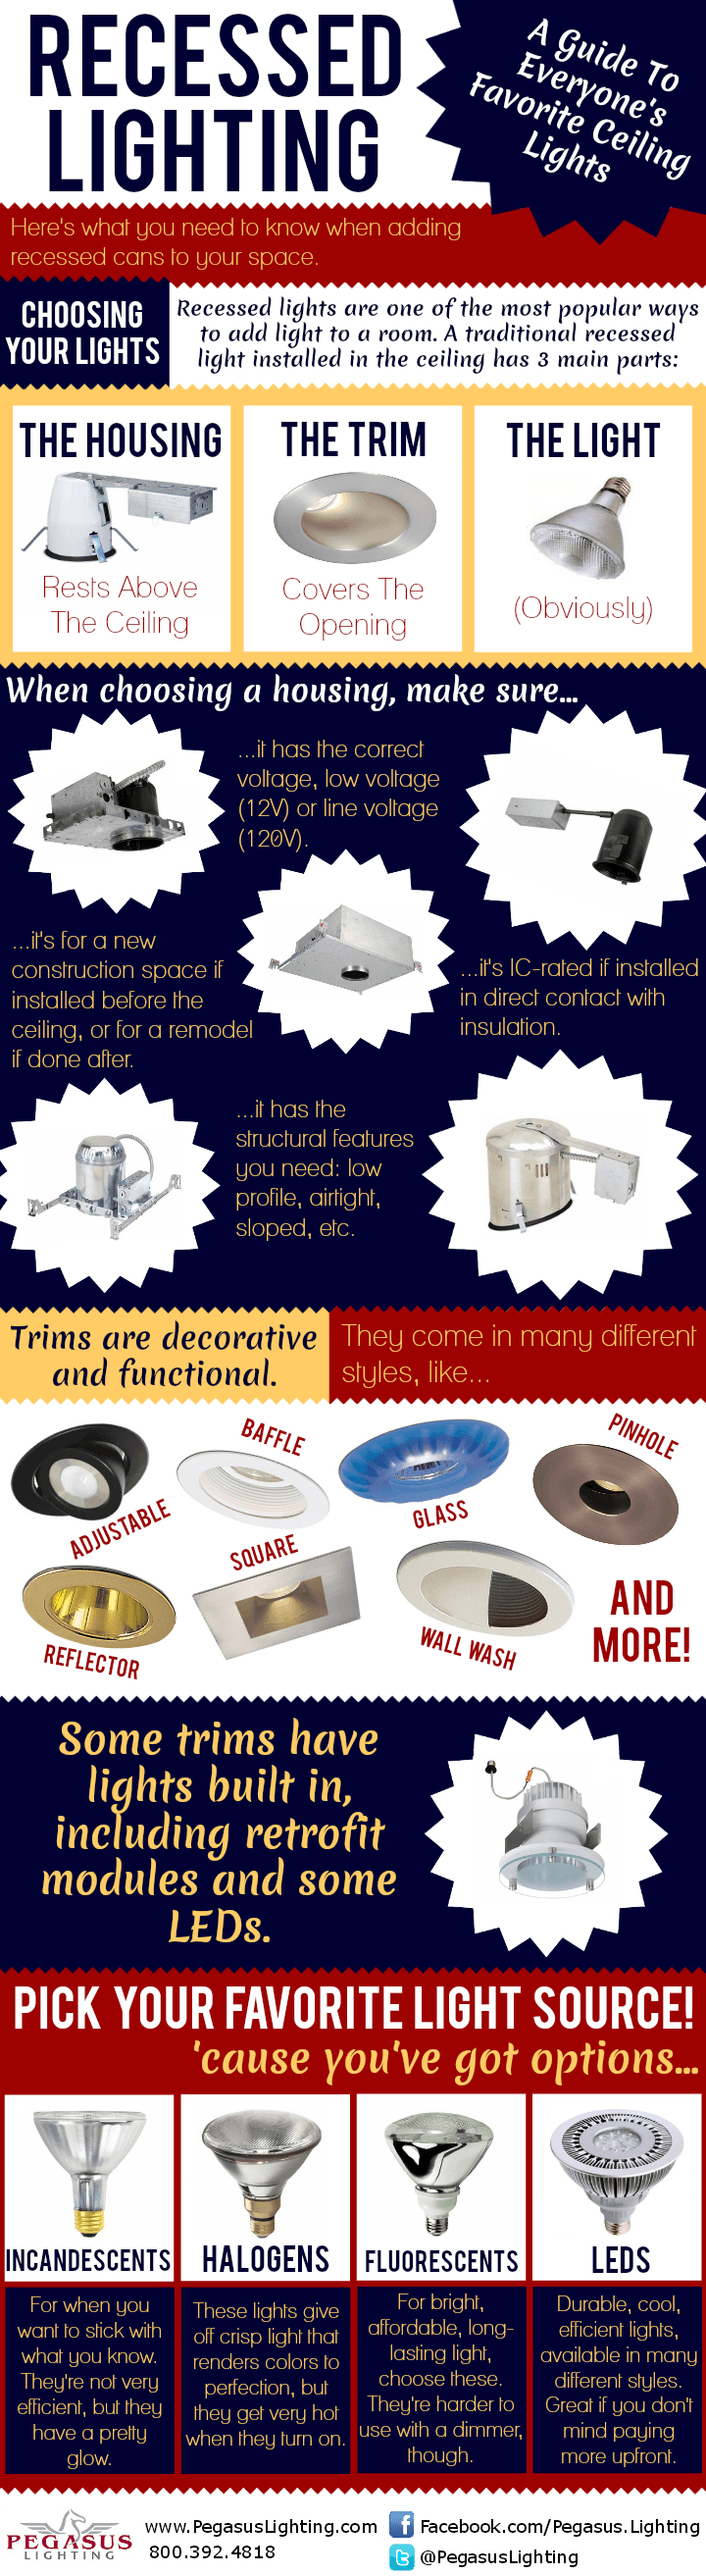 infographic recessed lighting guide